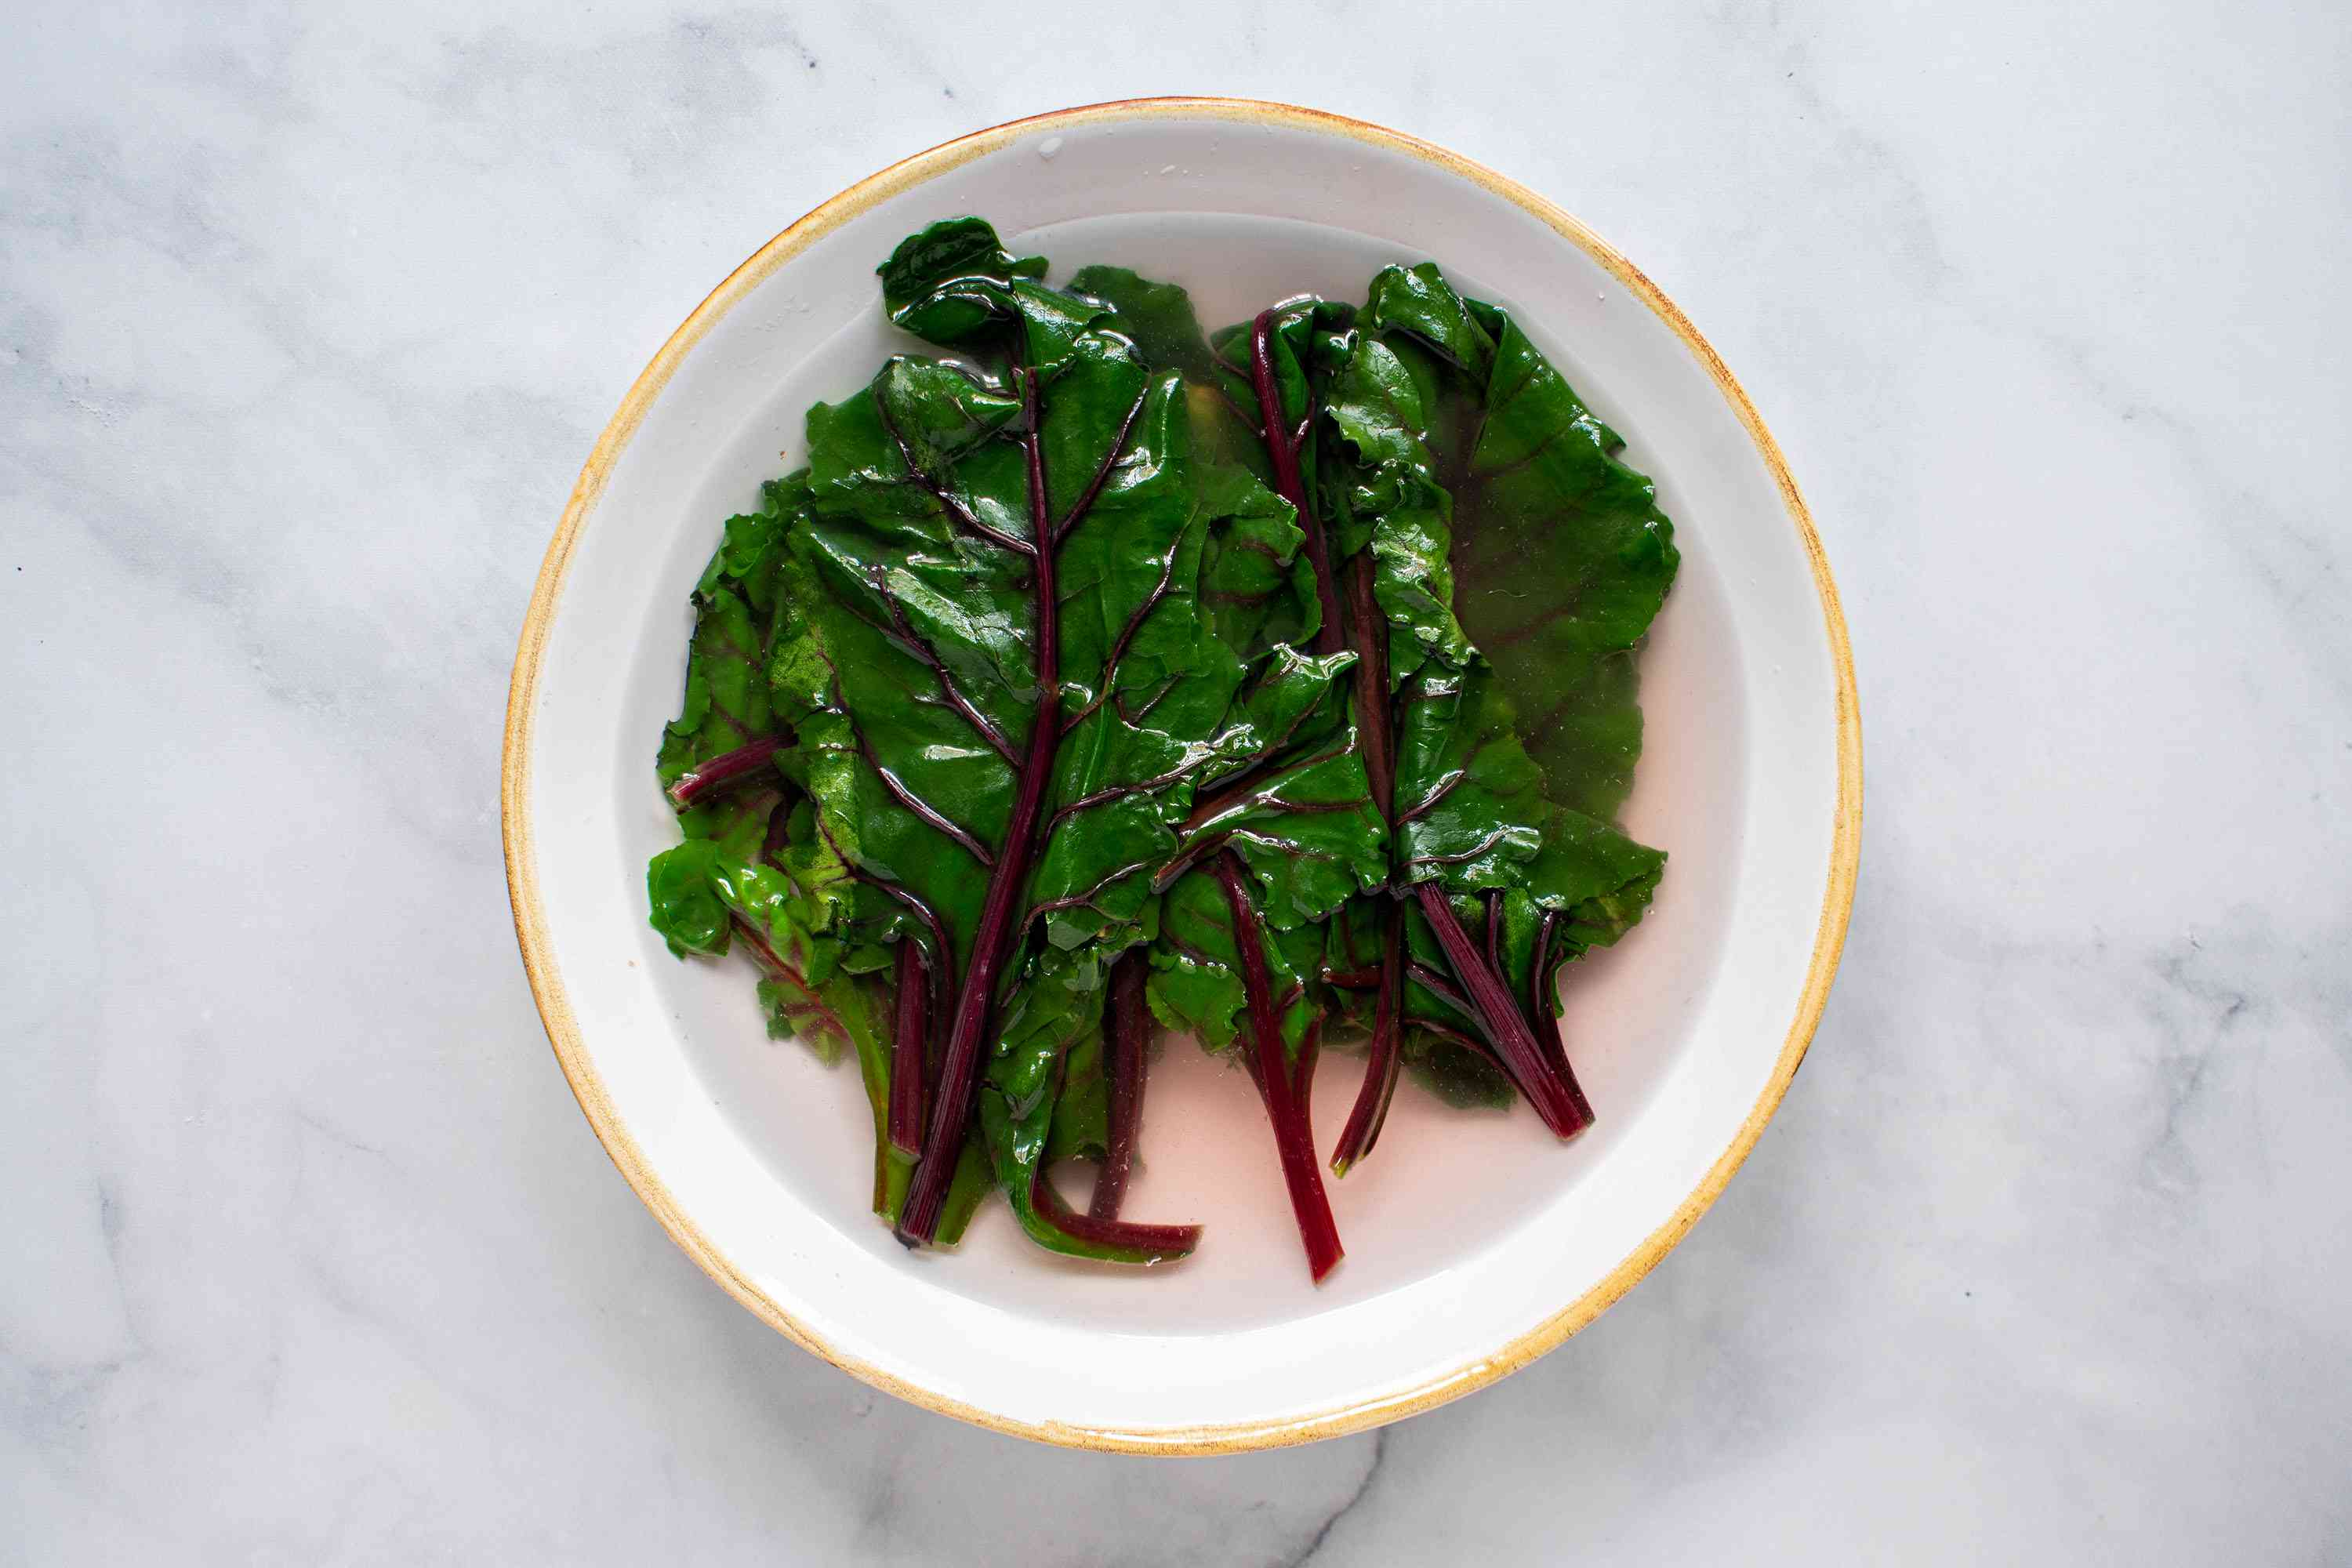 Remove the beet leaves from water and shock with cold water